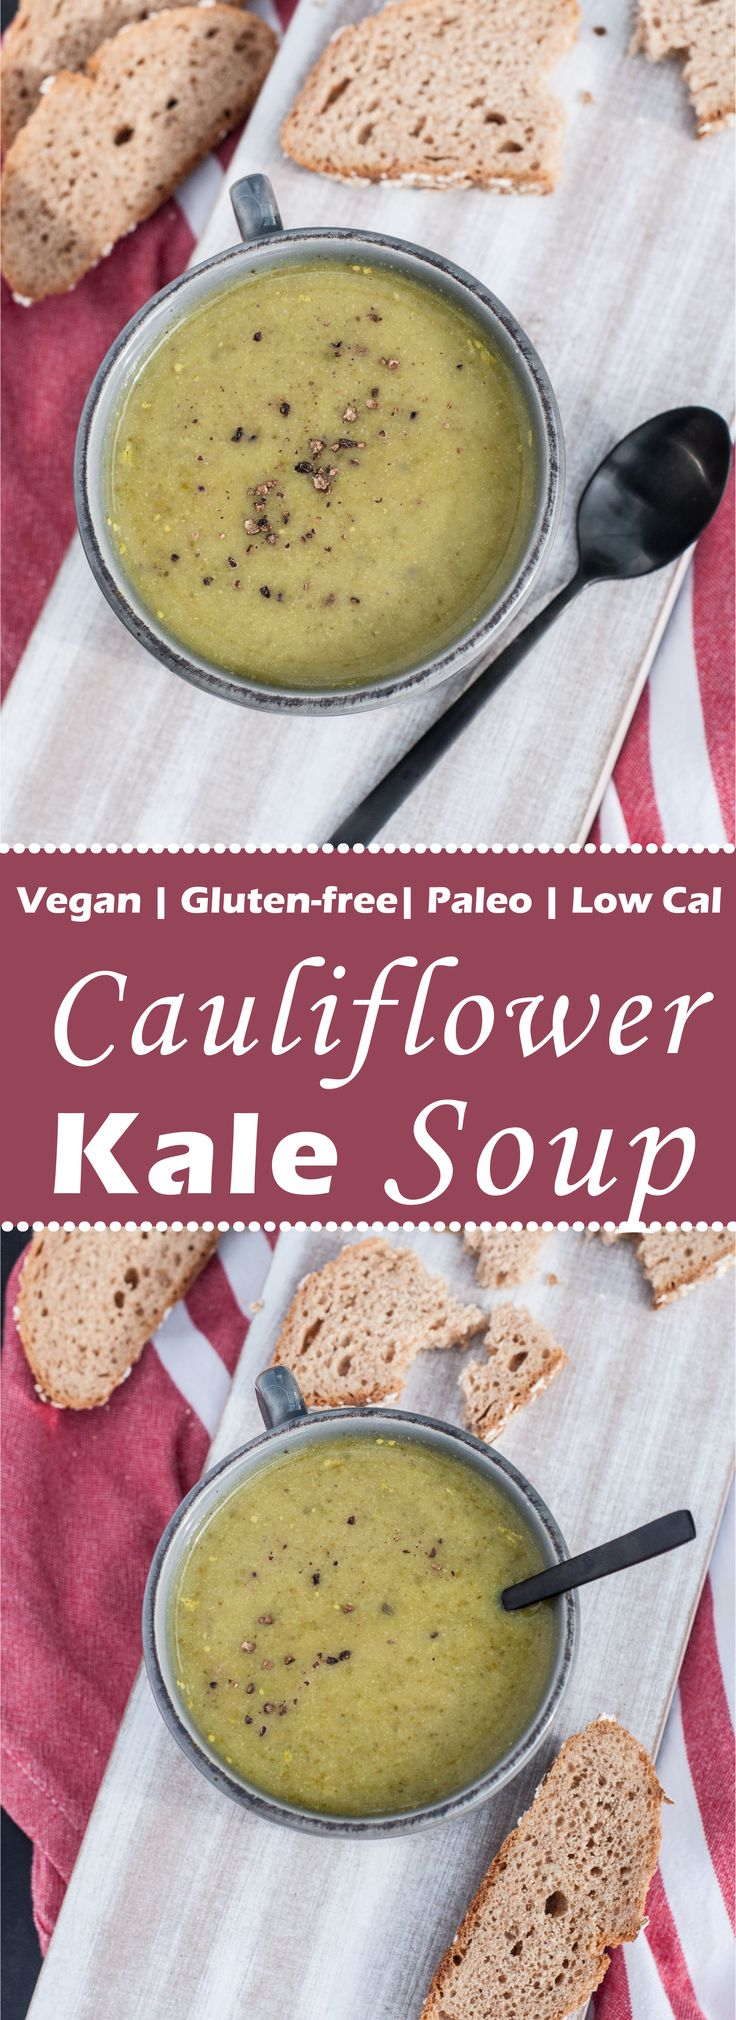 Healthy, Low cal & fat Cauliflower Kale Soup Recipe! Really easy to make, Vegan, Gluten-free, Paleo.and super tasty! Only 36 calories in 1 cup! RECIPE[ SoberAssistance.com ]